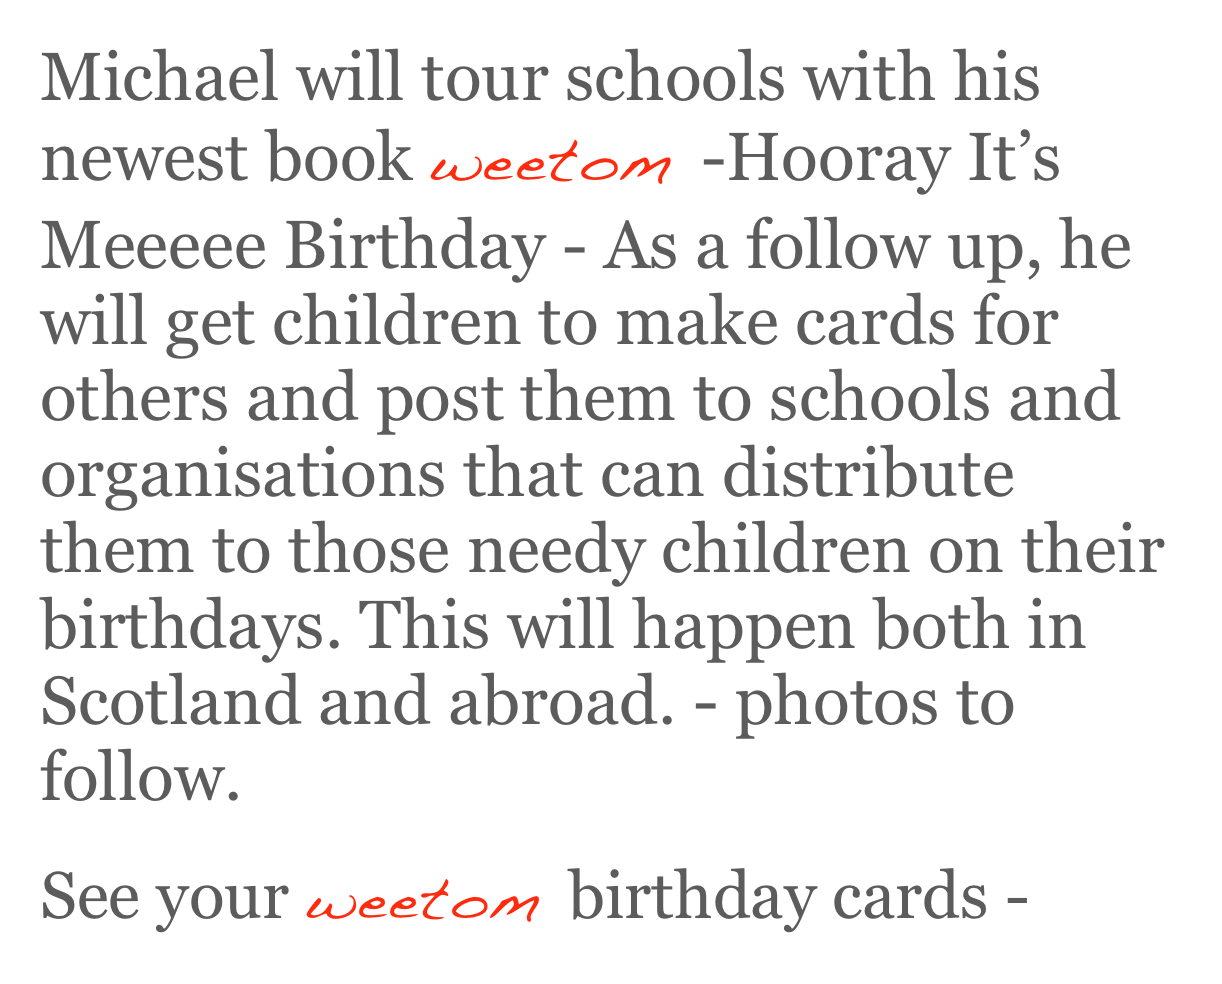 Michael will tour schools with his newest book weetom -Hooray It's Meeeee Birthday - As a follow up, he will get children to make cards for others and post them to schools and organisations that can distribute them to those needy children on their birthdays. This will happen both in Scotland and abroad. - photos to follow.